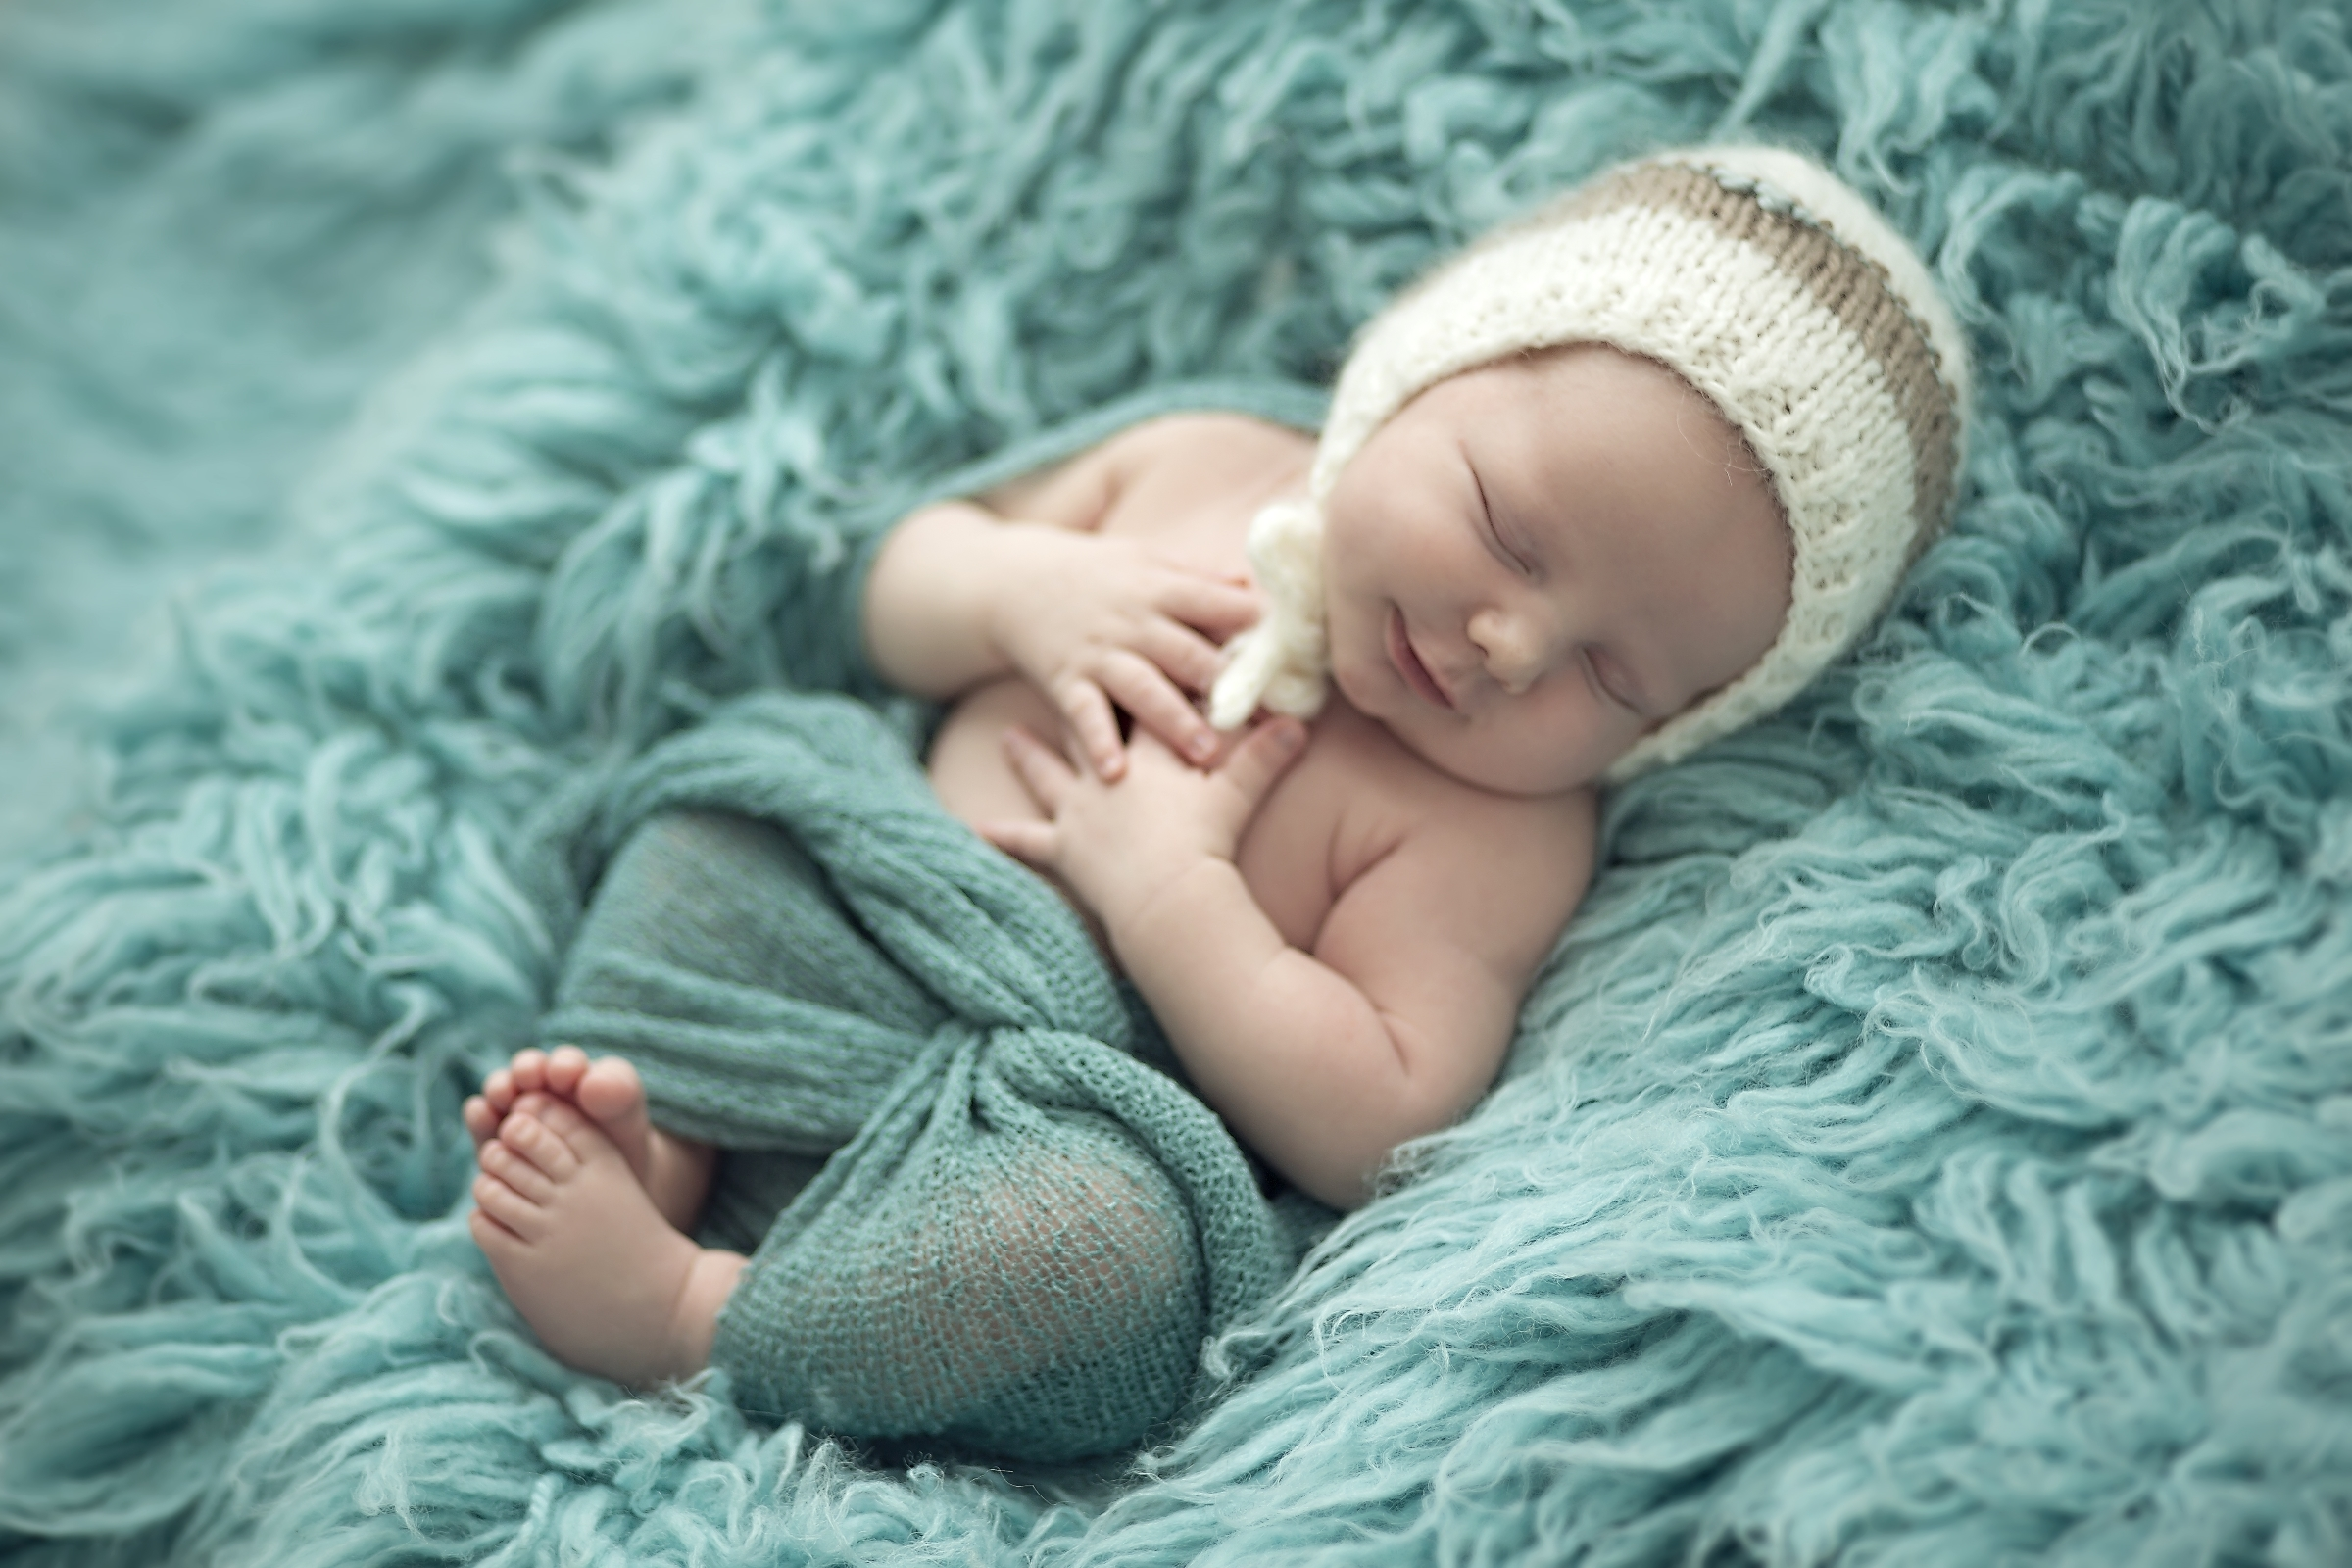 Sweet Baby Boy Hd Wallpaper Background Image 2400x1600 Id 728546 Wallpaper Abyss